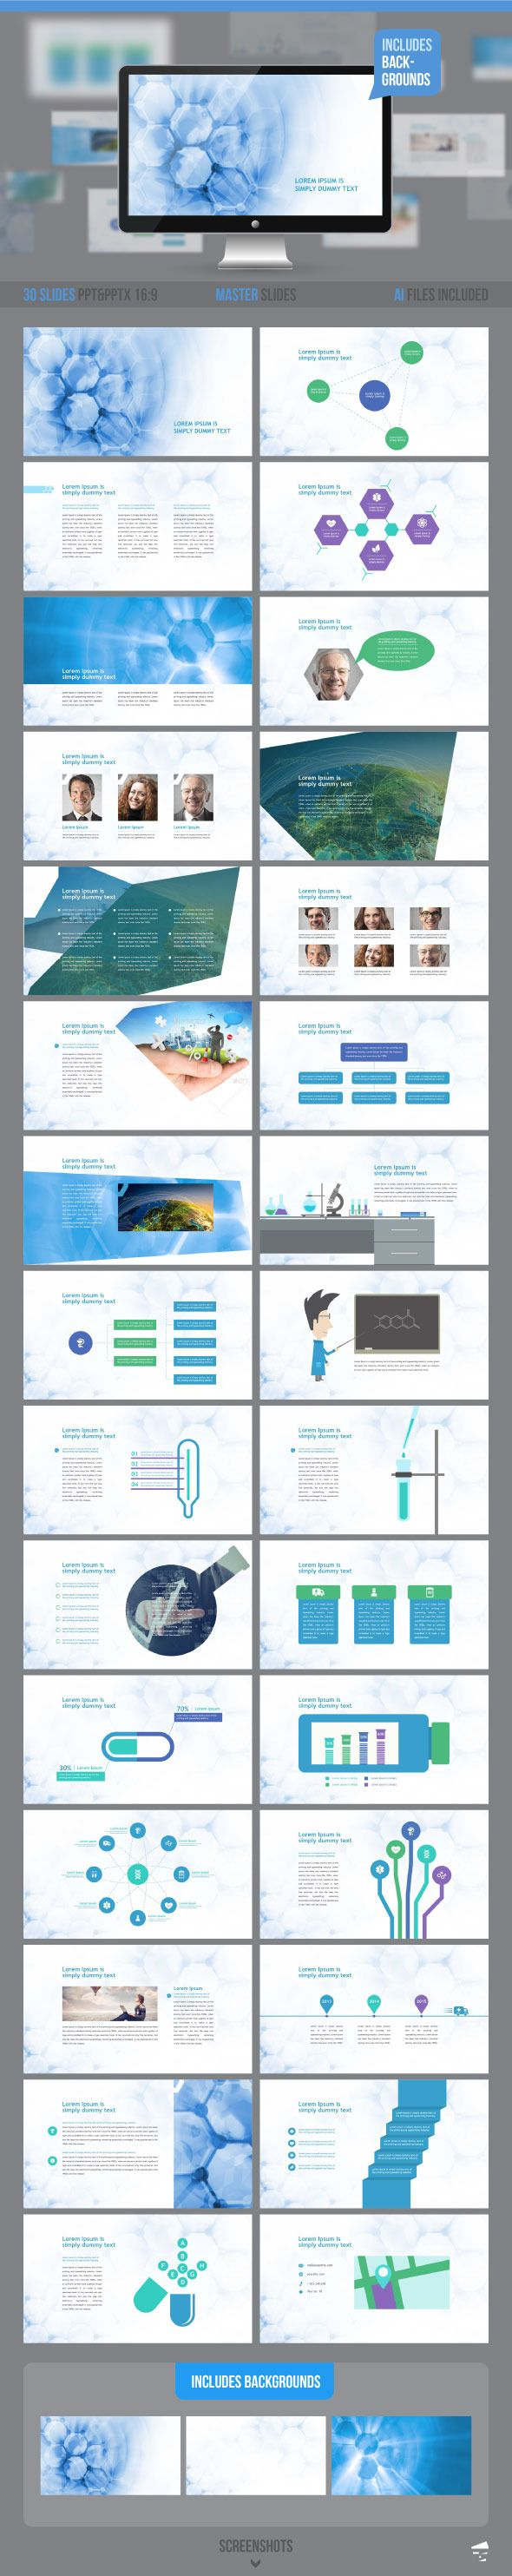 Medical Professional Presentation Template #design Download: http://graphicriver.net/item/medical-professional-presentation-/11816538?ref=ksioks